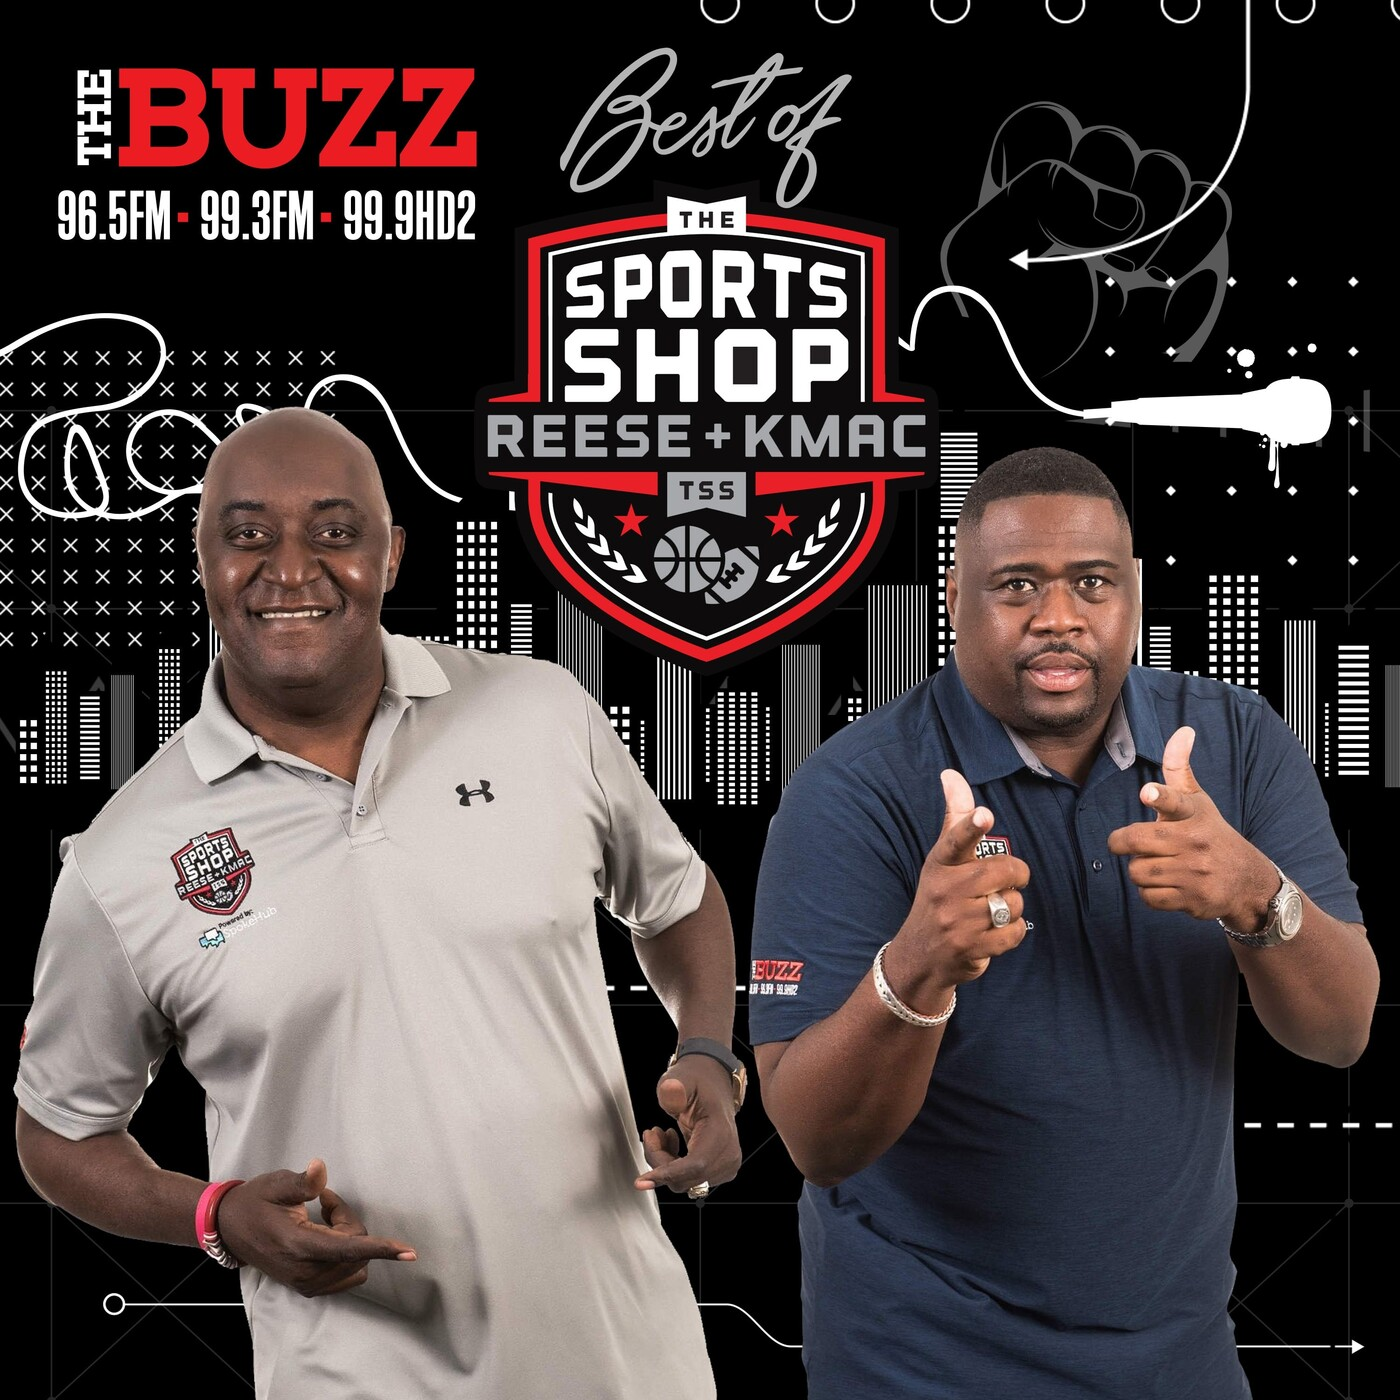 The Best of The Sports Shop (October 20, 2020)